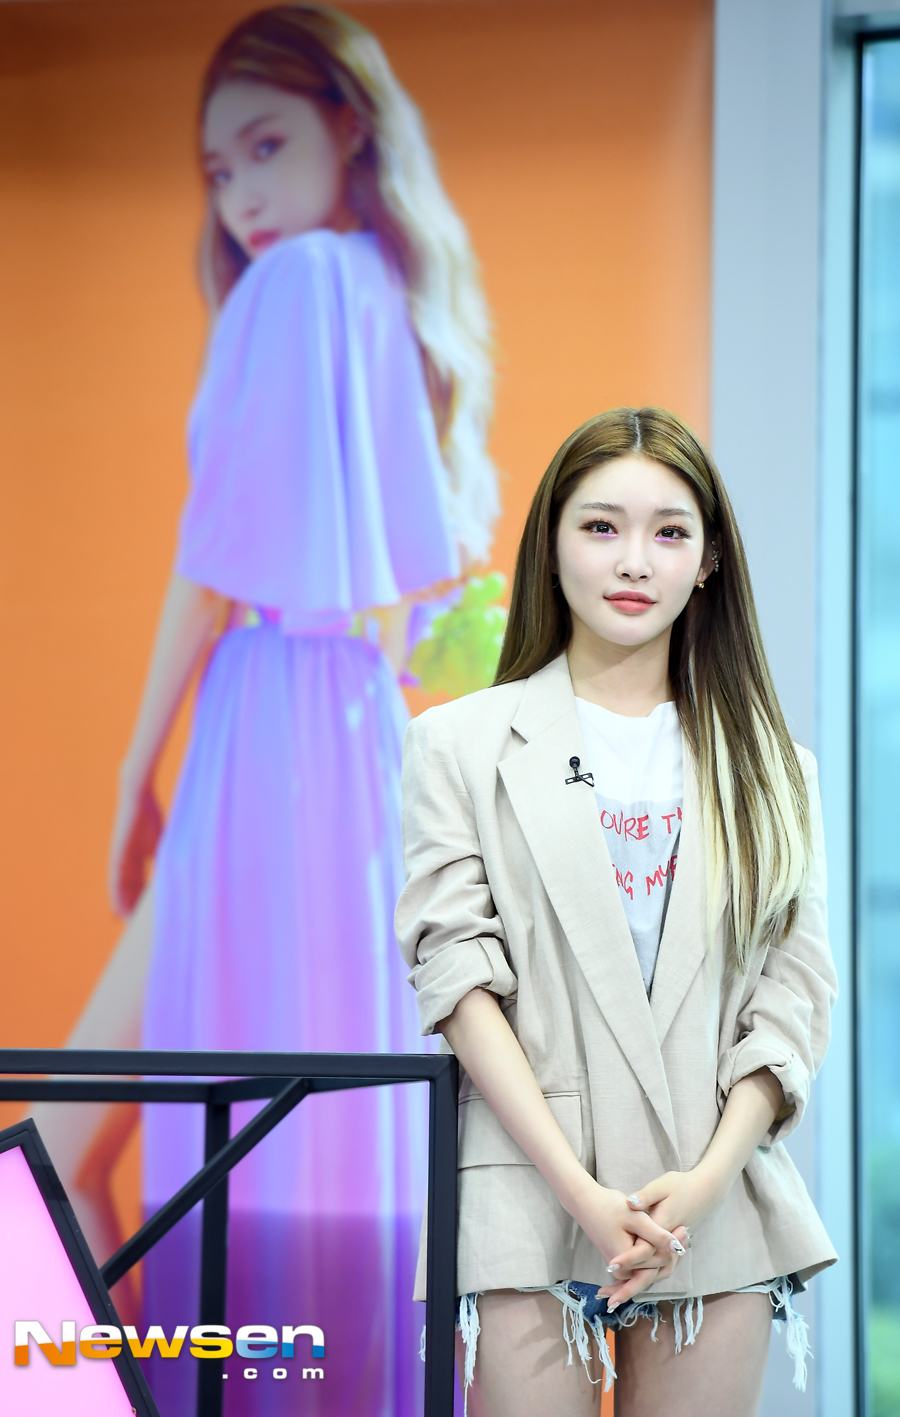 <p>Star interview asking tbs fact star Singer was held on Sangam-dong tbs Open Studio in Mapo Seoul morning on July 24th.</p><p>Kiyohawa of this day is taking a pose.</p>